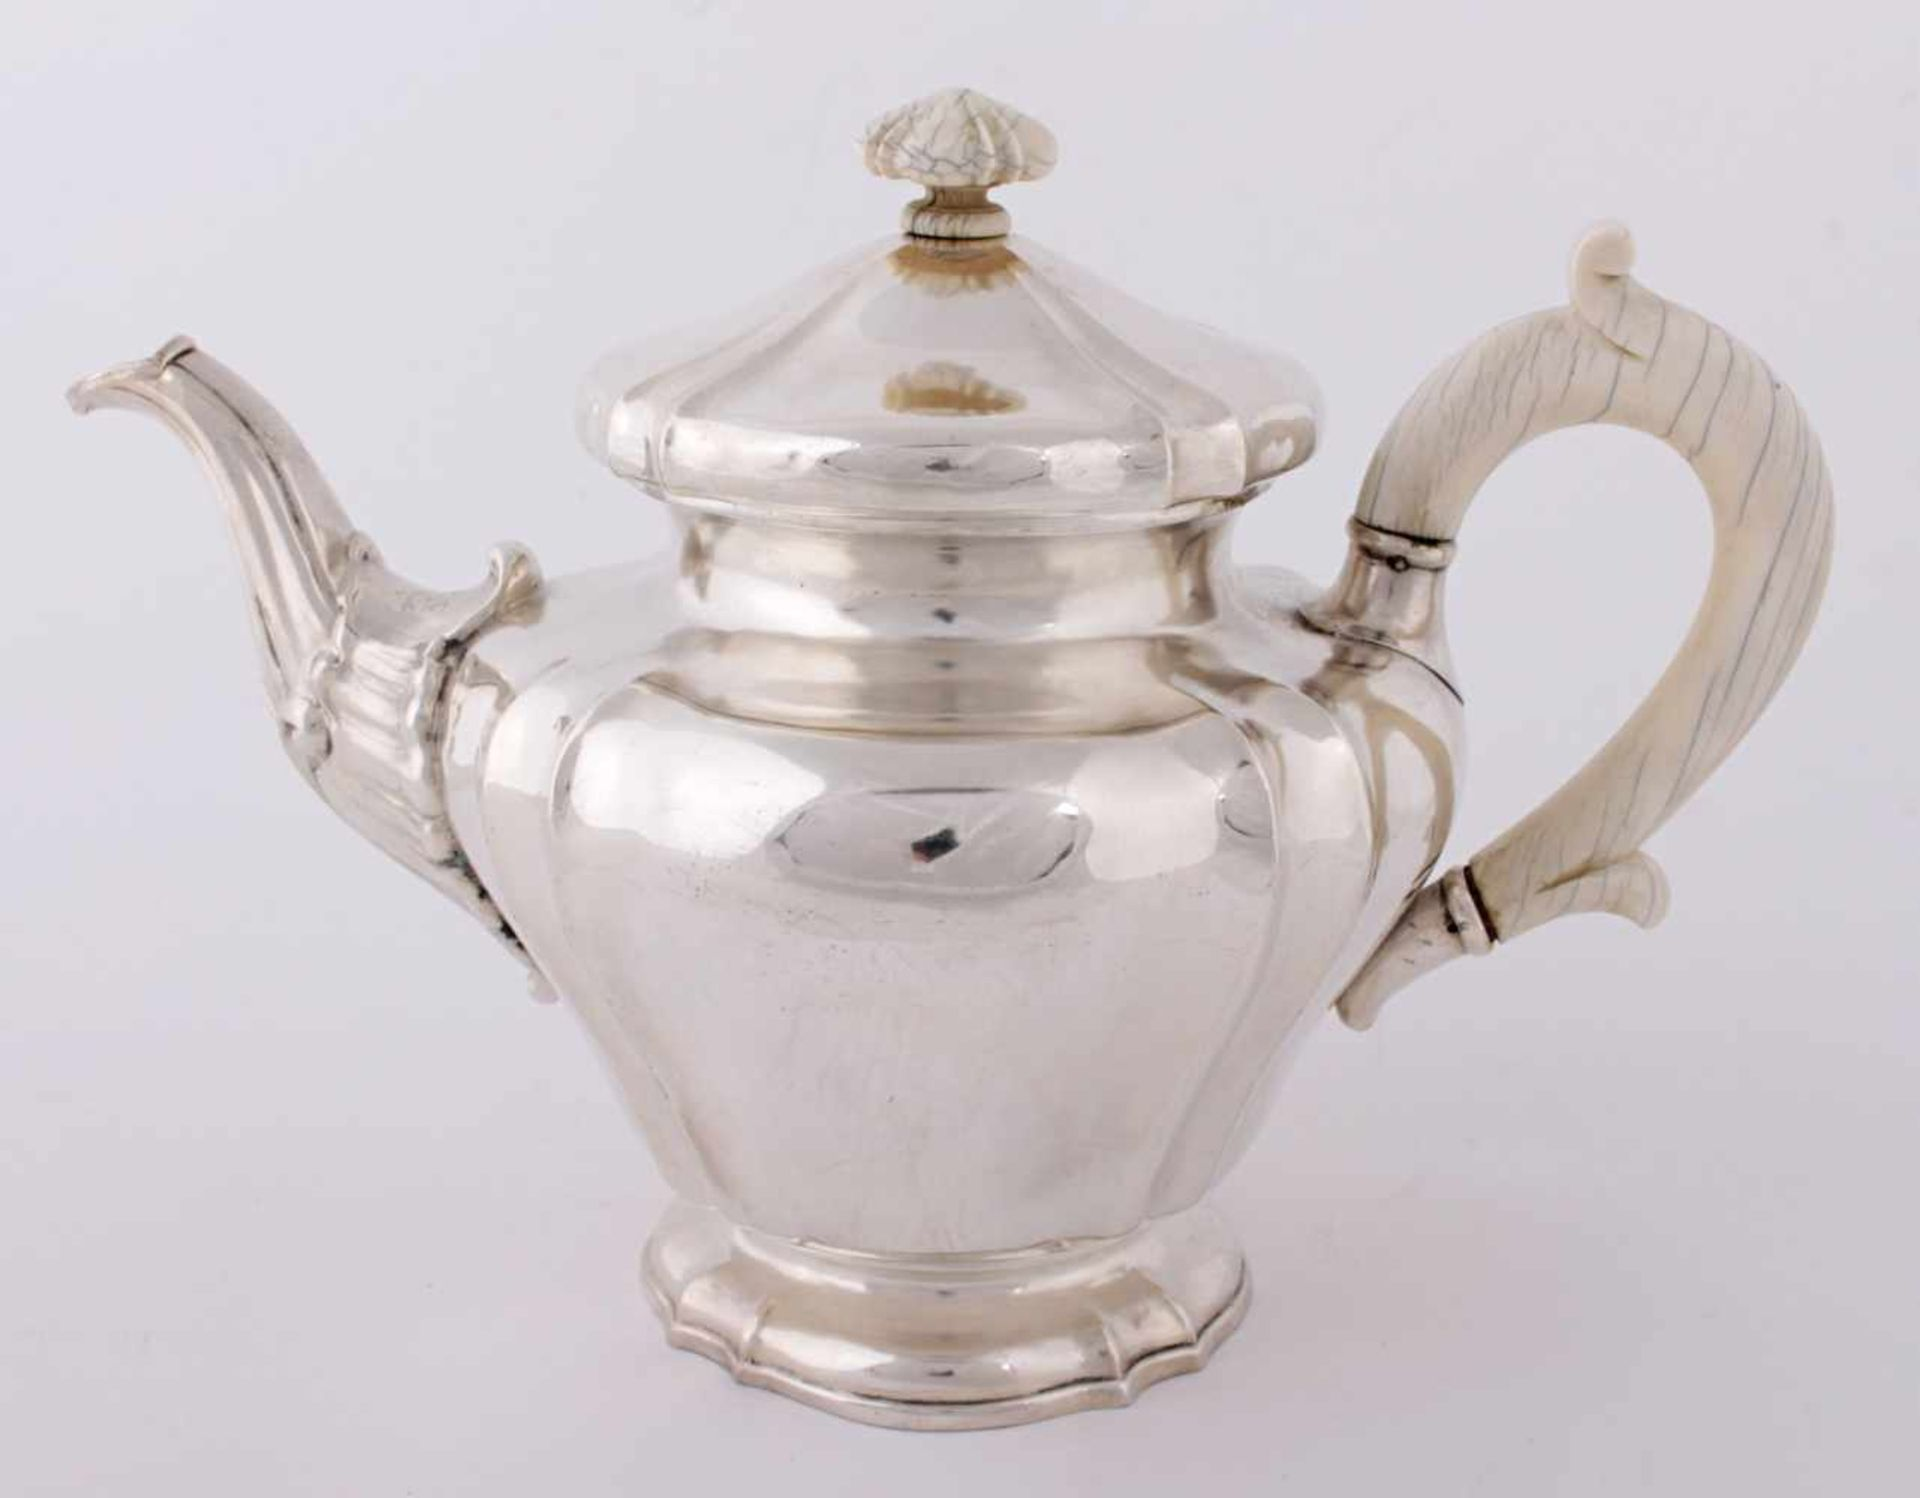 Silver tea pot with ivory handles Middle Europe, 2nd half of the 19th century, silver tea pot, 800/